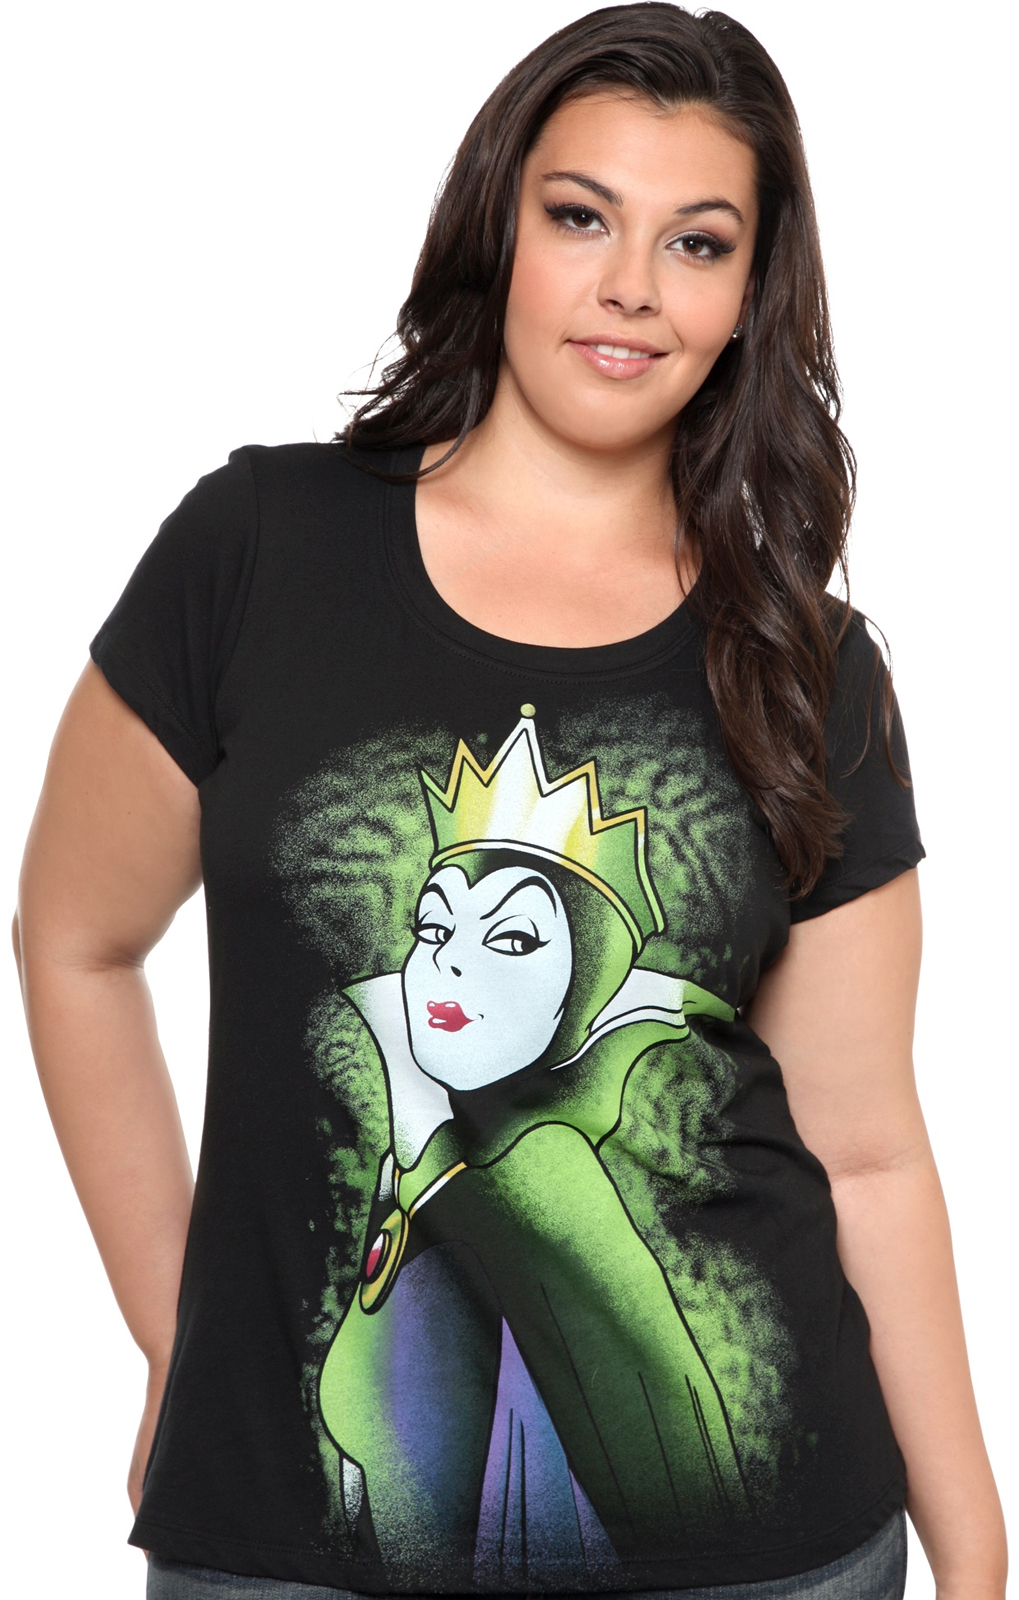 Filmic Light - Snow White Archive: Evil Queen Tees and TopsDisney Evil Queen T Shirt